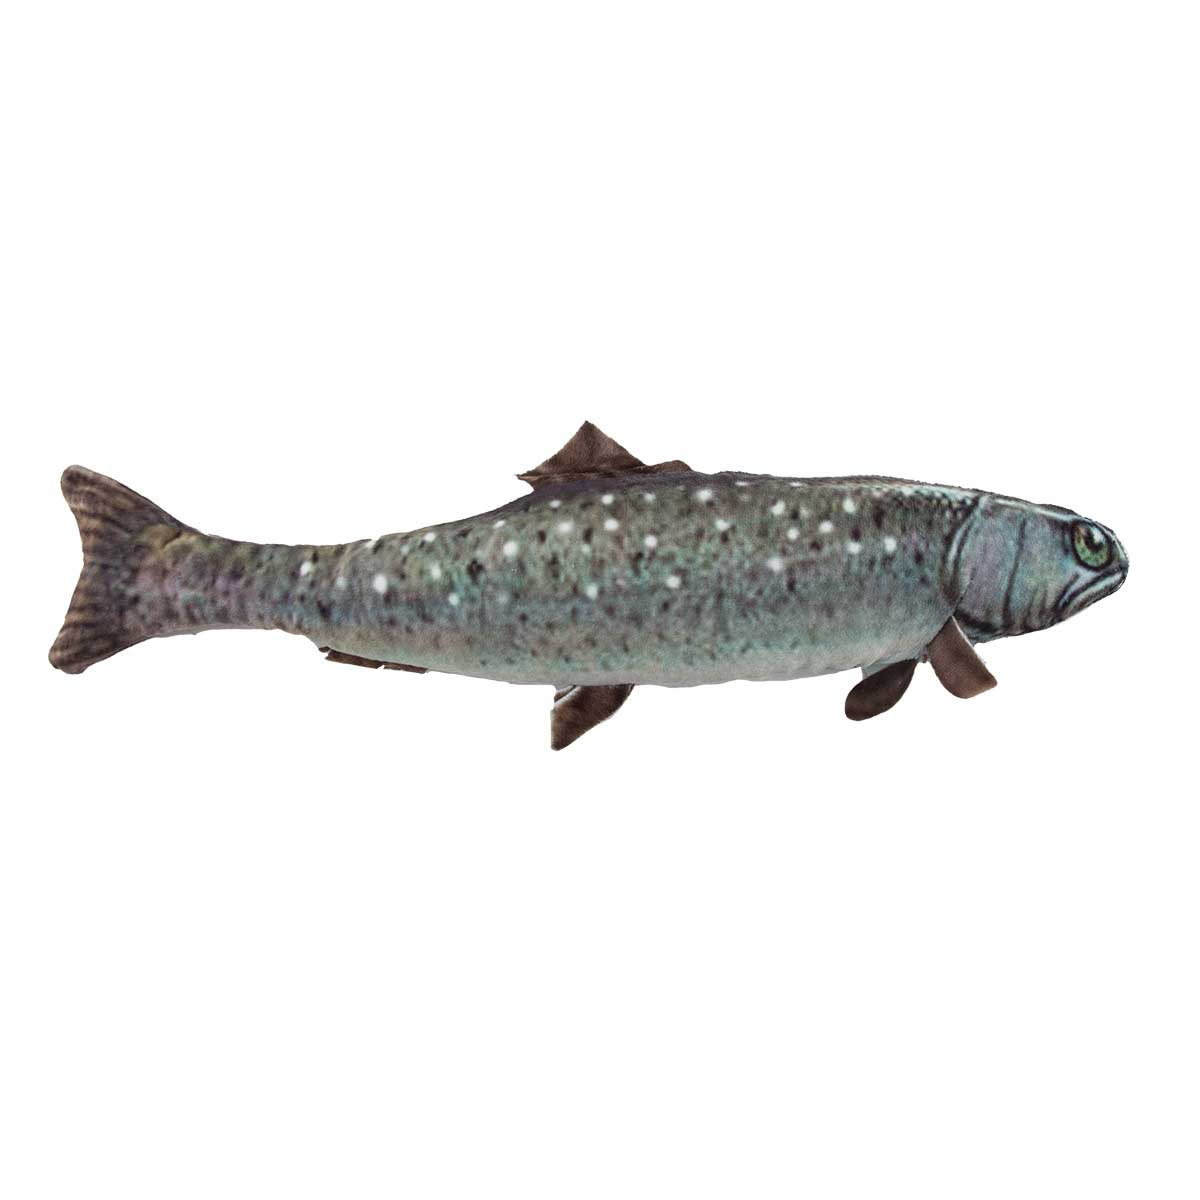 Dawgeee Toy Plush Sea Trout 15 inch Dog Toy available at Ryan's Pet Supplies